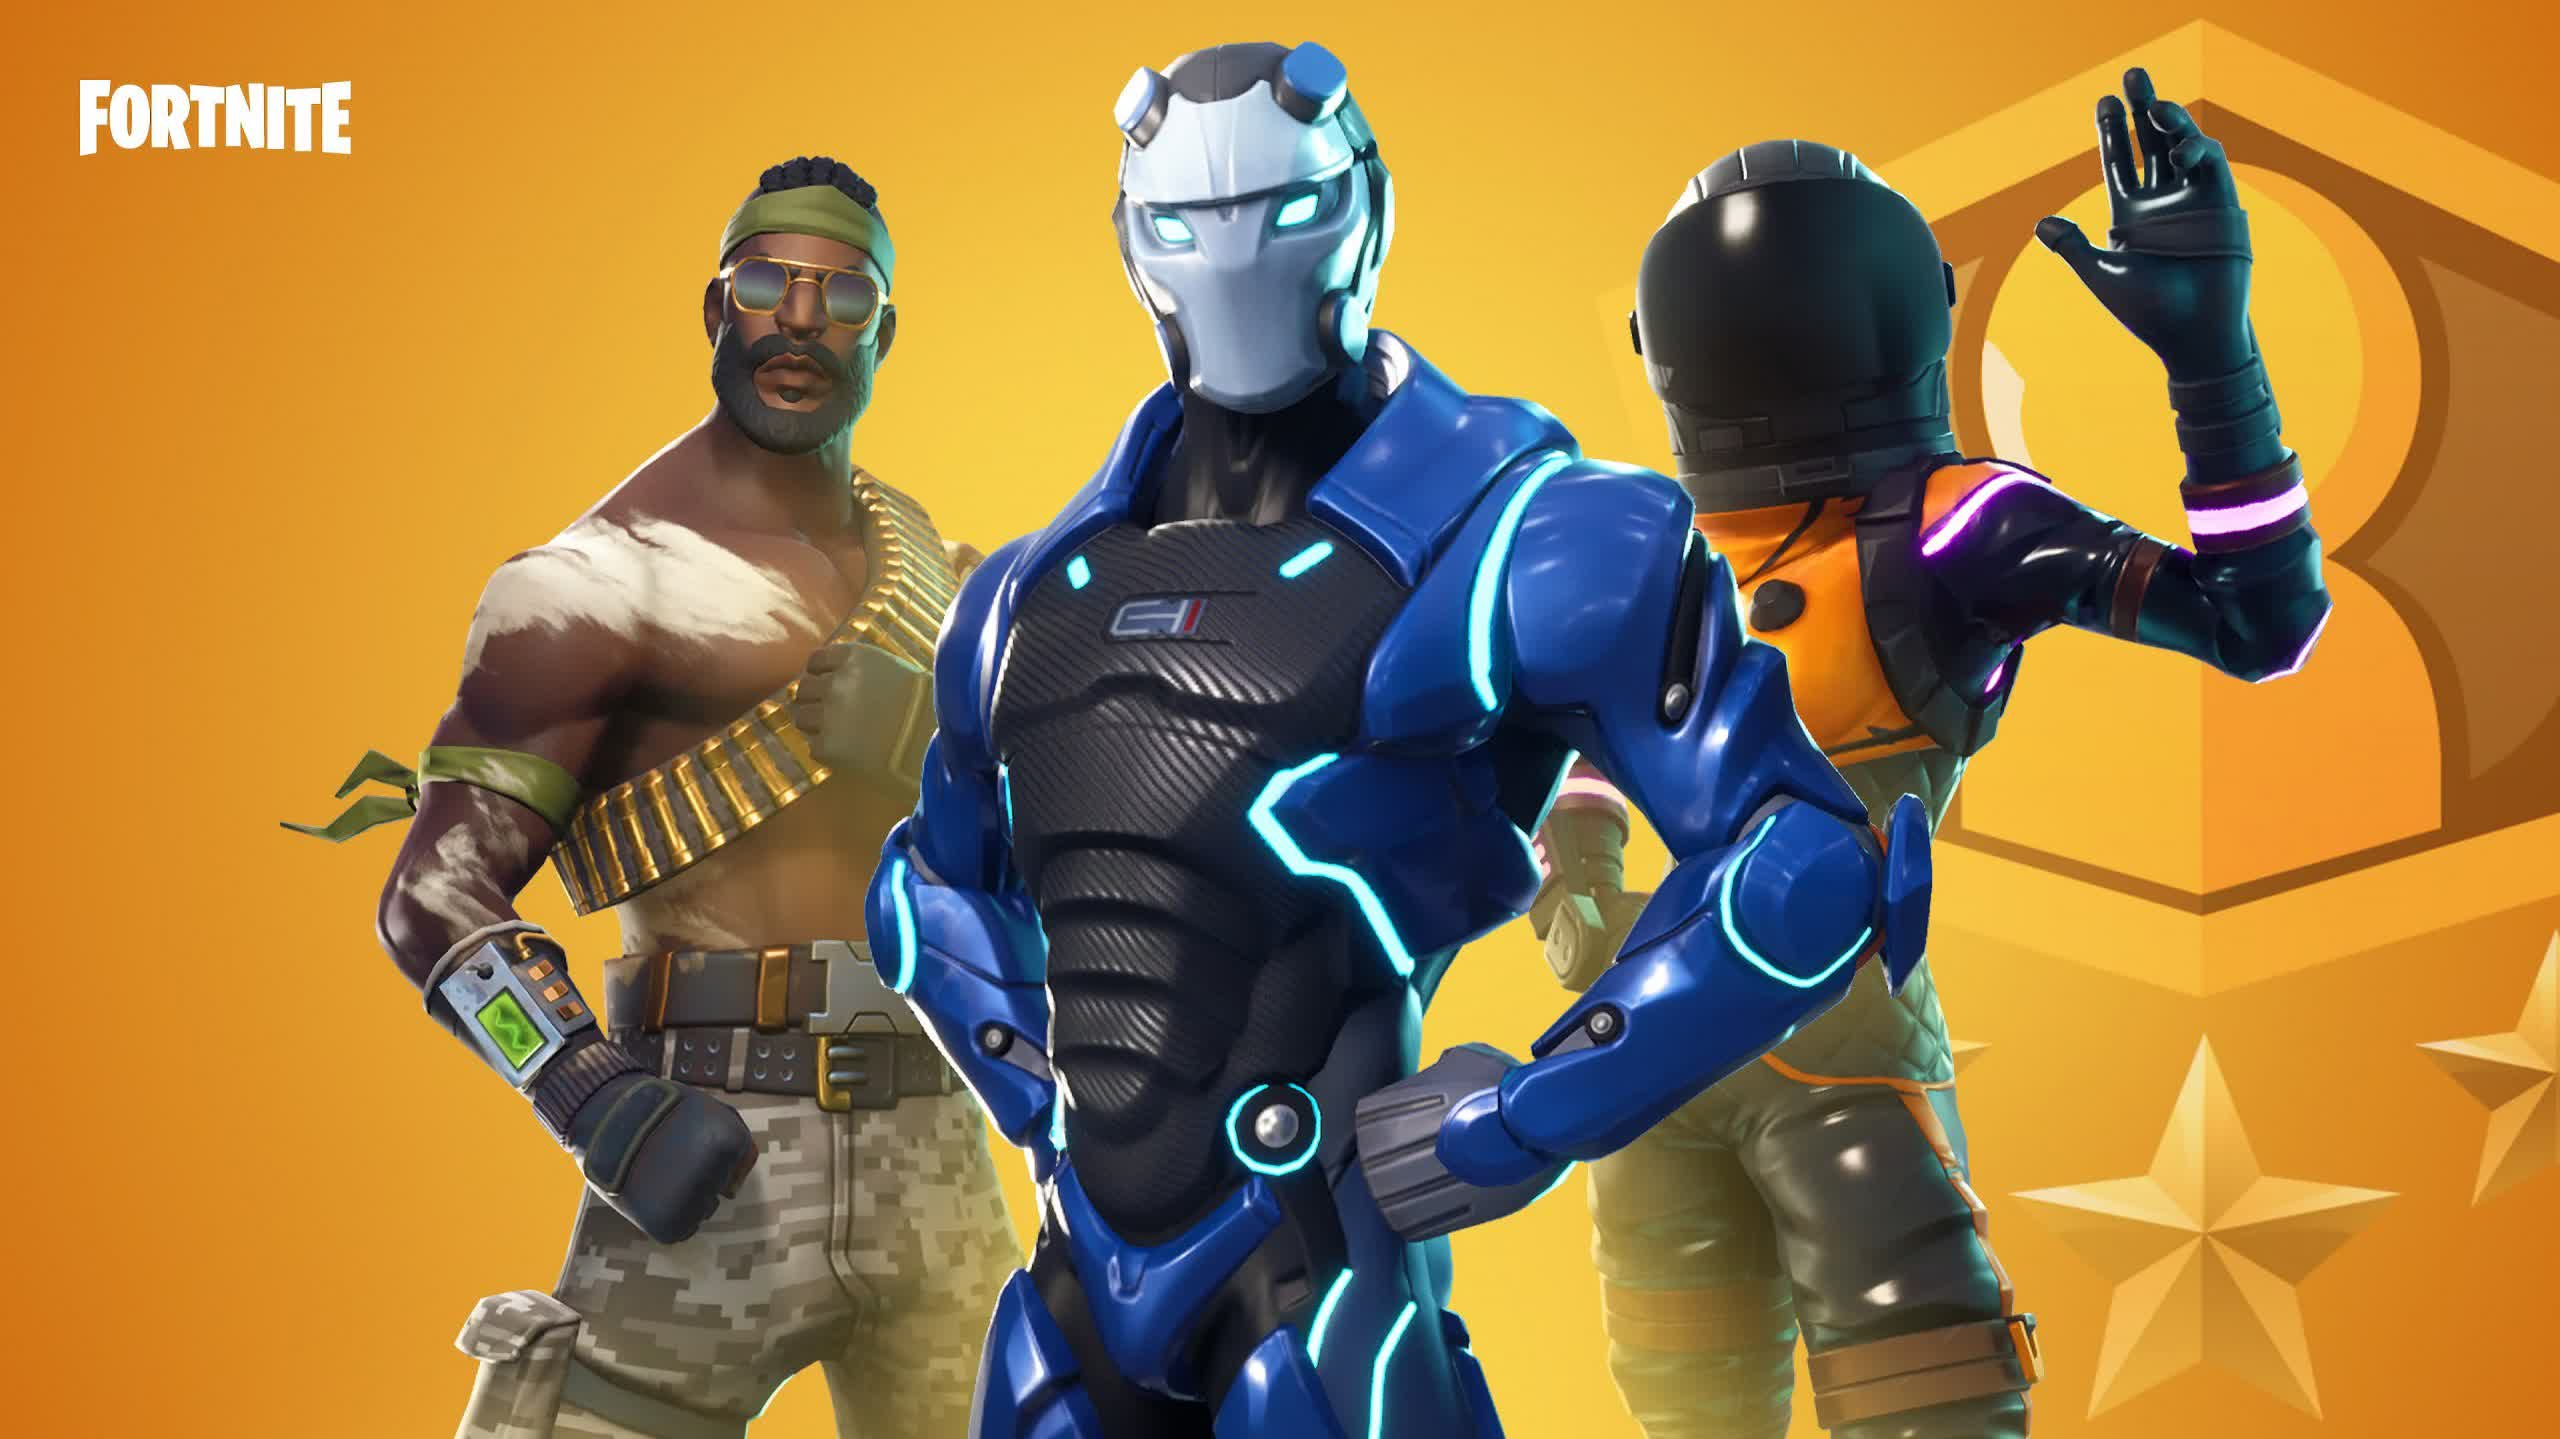 Google files counterclaim against Epic Games for dodging commissions on in-app purchases